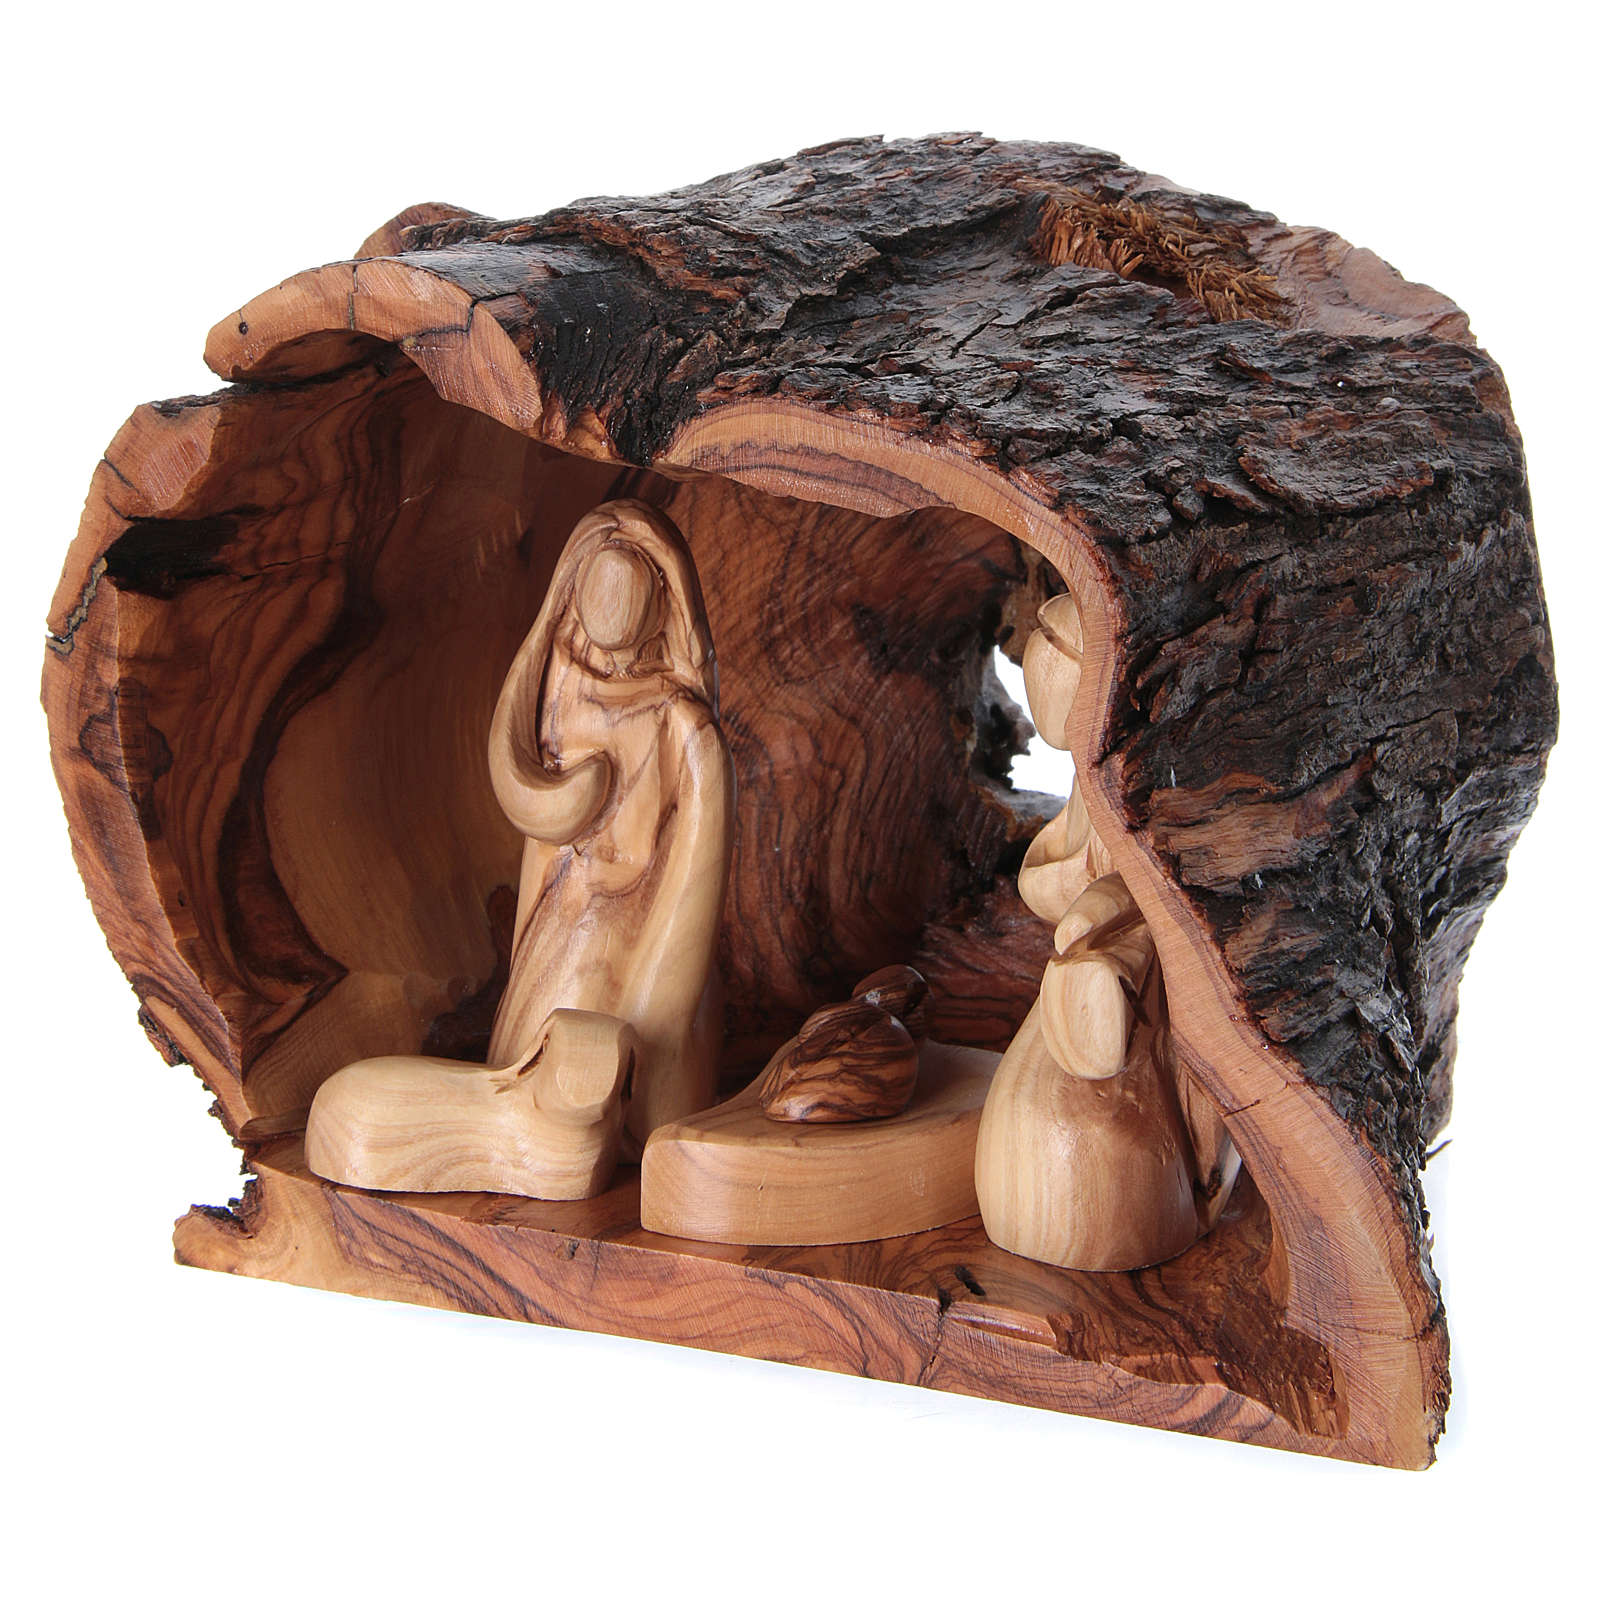 Grotto Holy Family Nativity in Olive wood from Bethlehem 15x20x15 cm 4